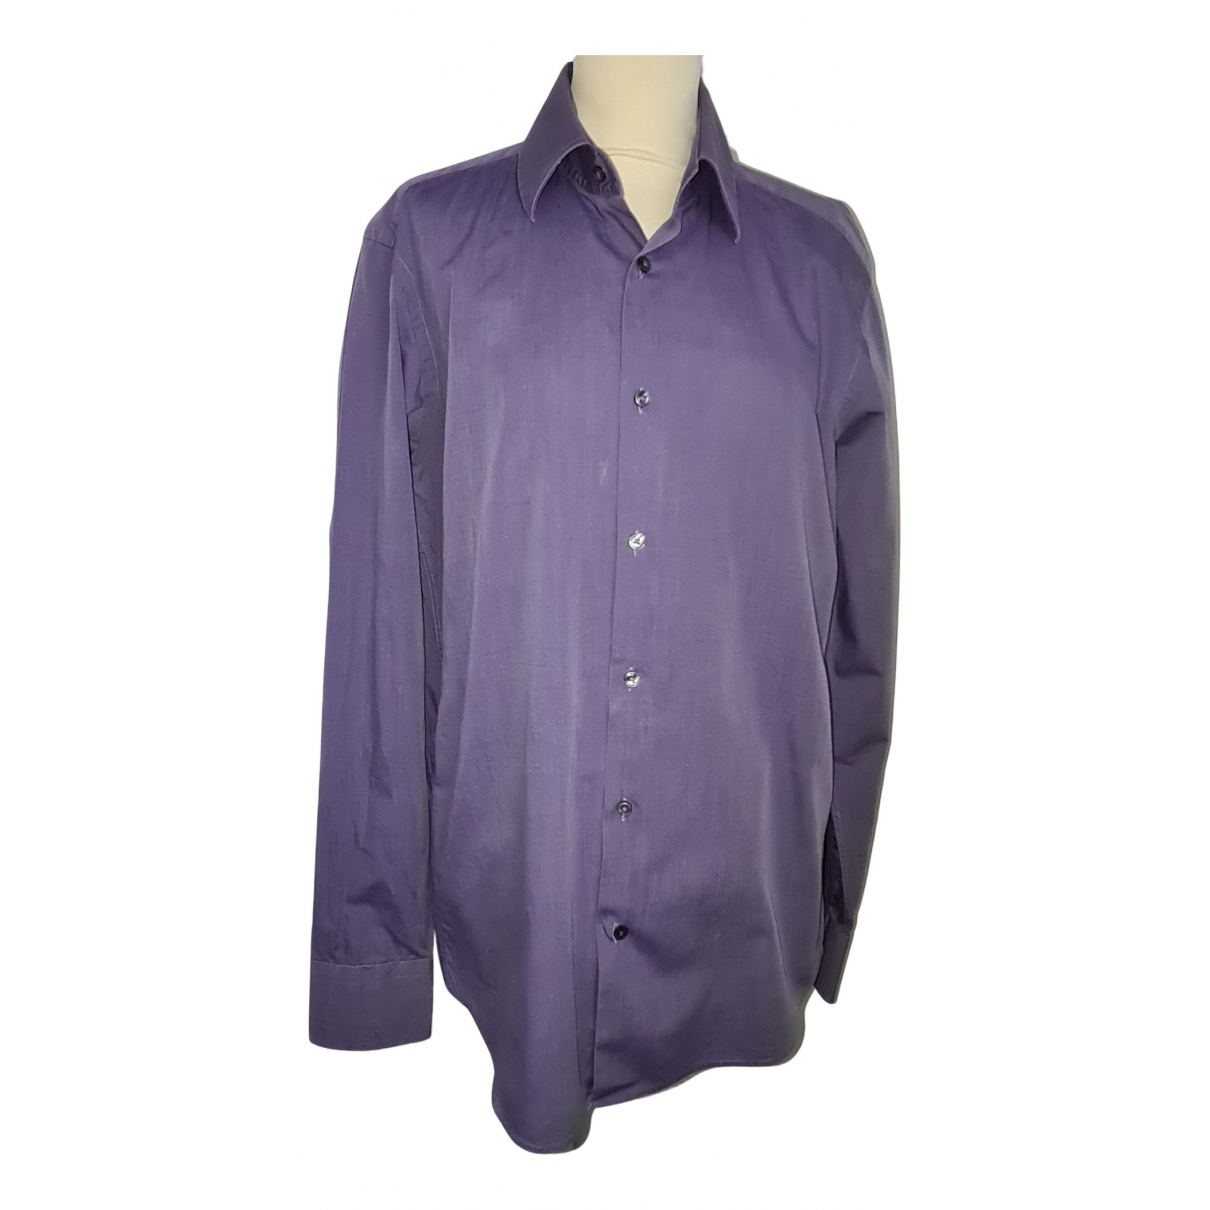 Boss N Purple Cotton Shirts for Men 40 EU (tour de cou / collar)